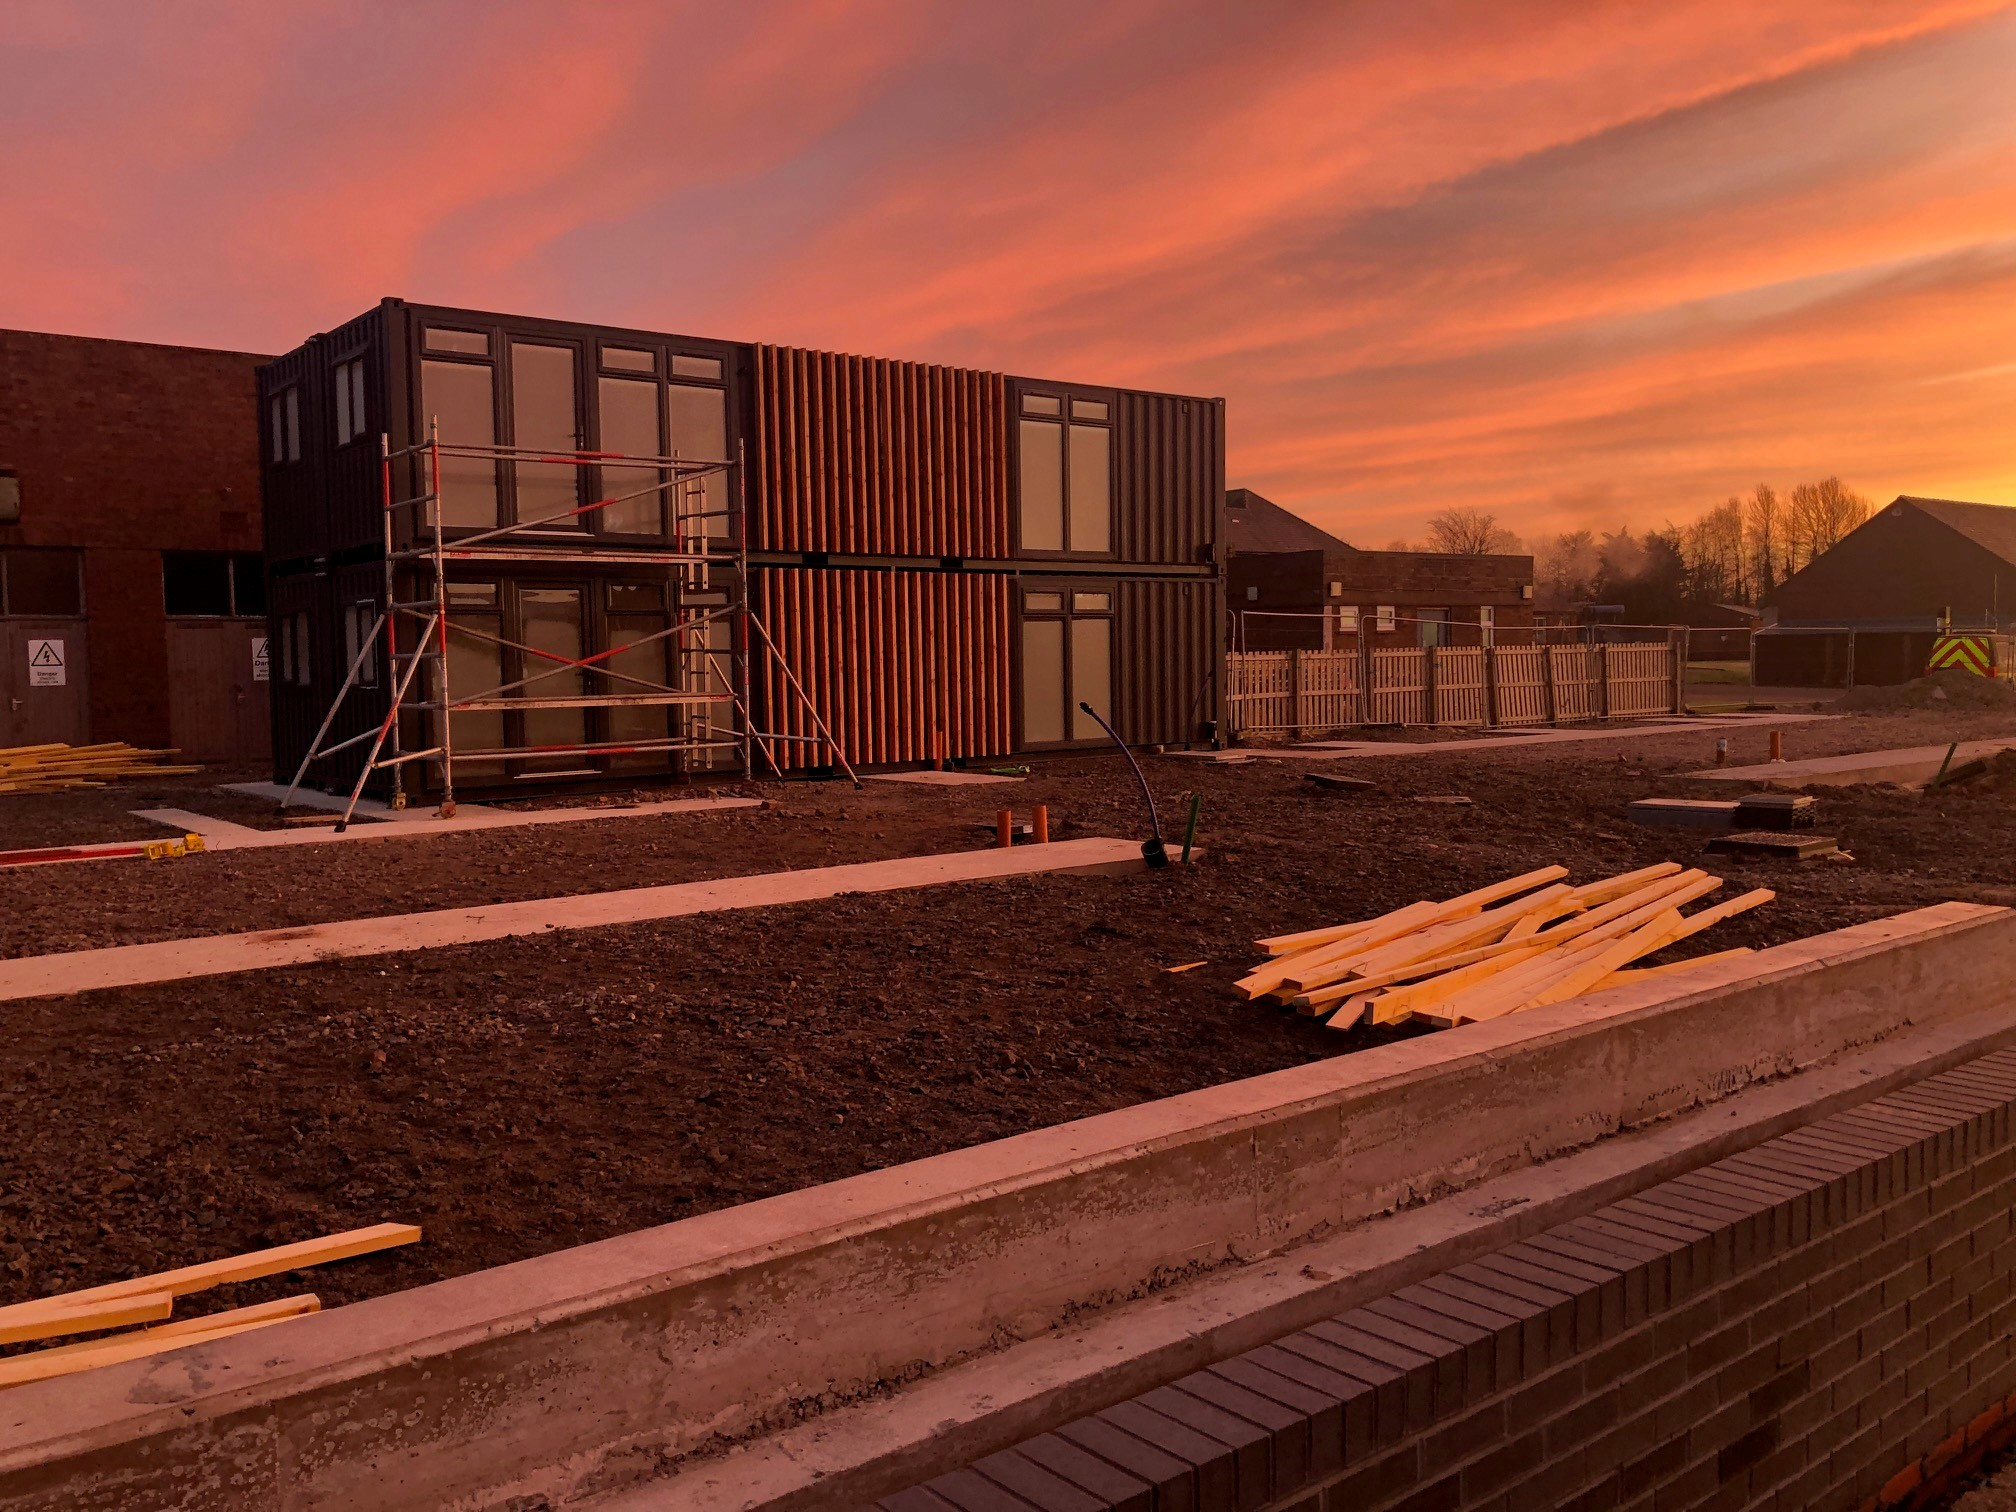 Building containers in an red sunrise